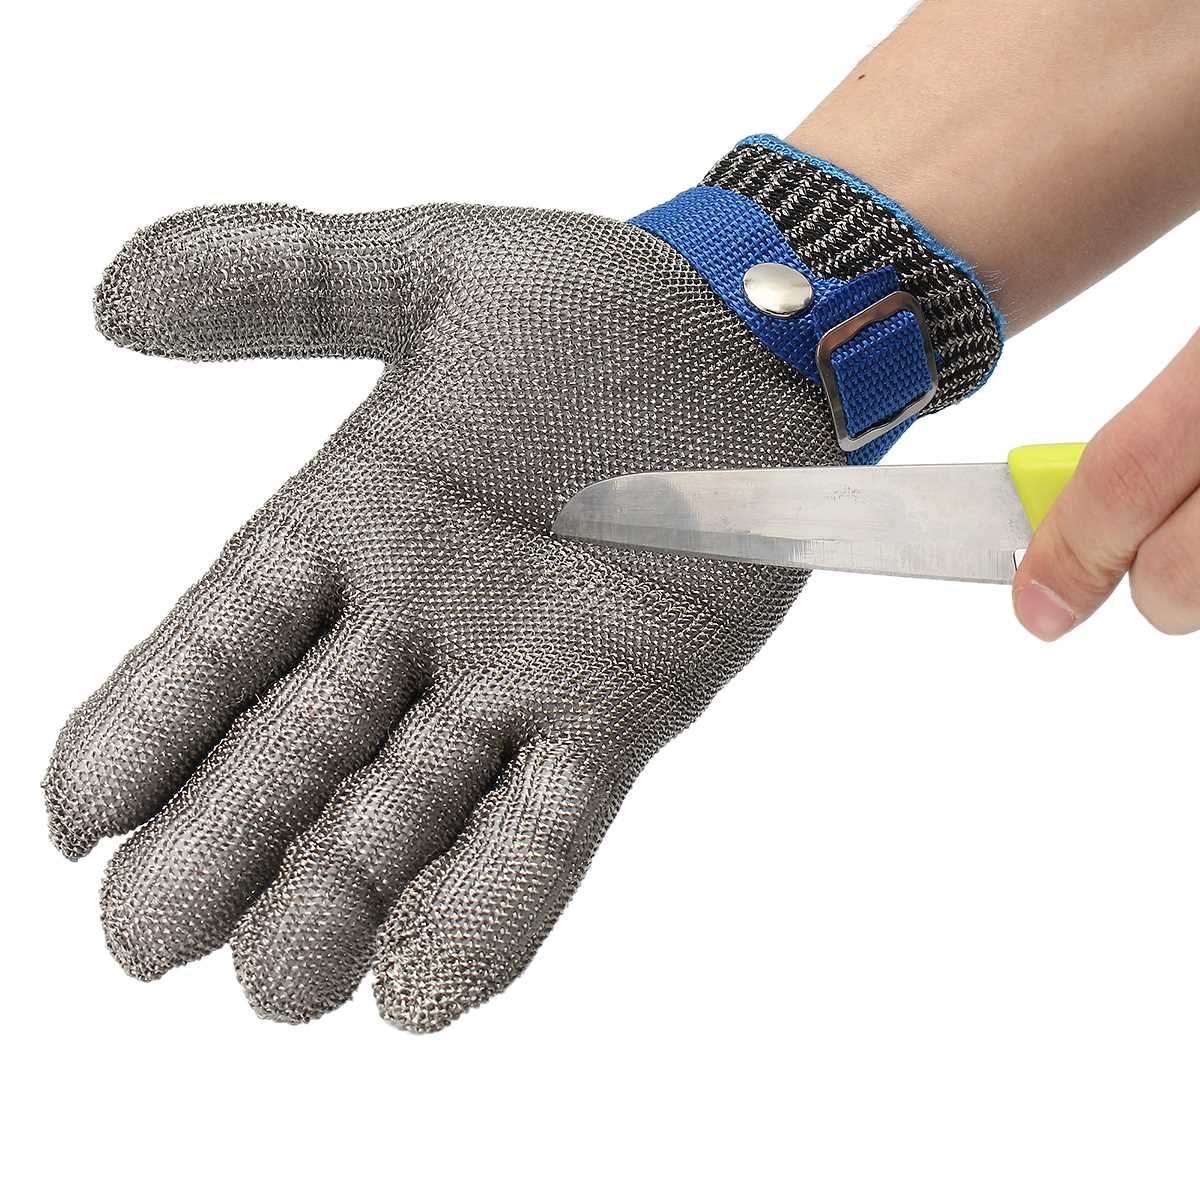 NEW Size S Safety Cut Proof Stab Resistant Stainless Steel Wire Metal Mesh Glove High Performance Level 5 Protection top quality 304l stainless steel mesh knife cut resistant chain mail protective glove for kitchen butcher working safety